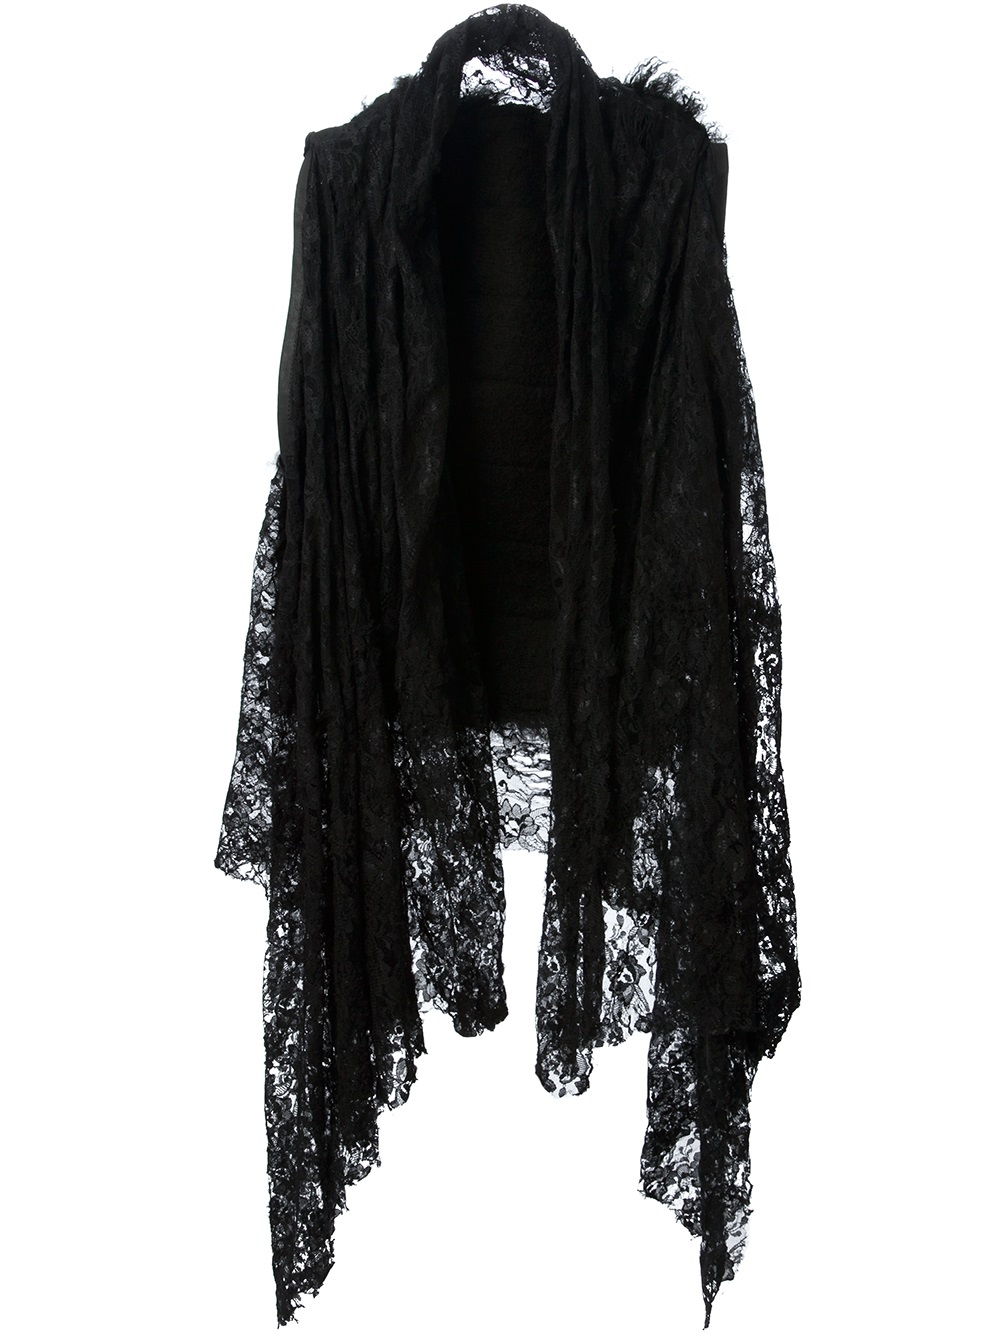 Simona tagliaferri Long Lace Cardigan in Black | Lyst